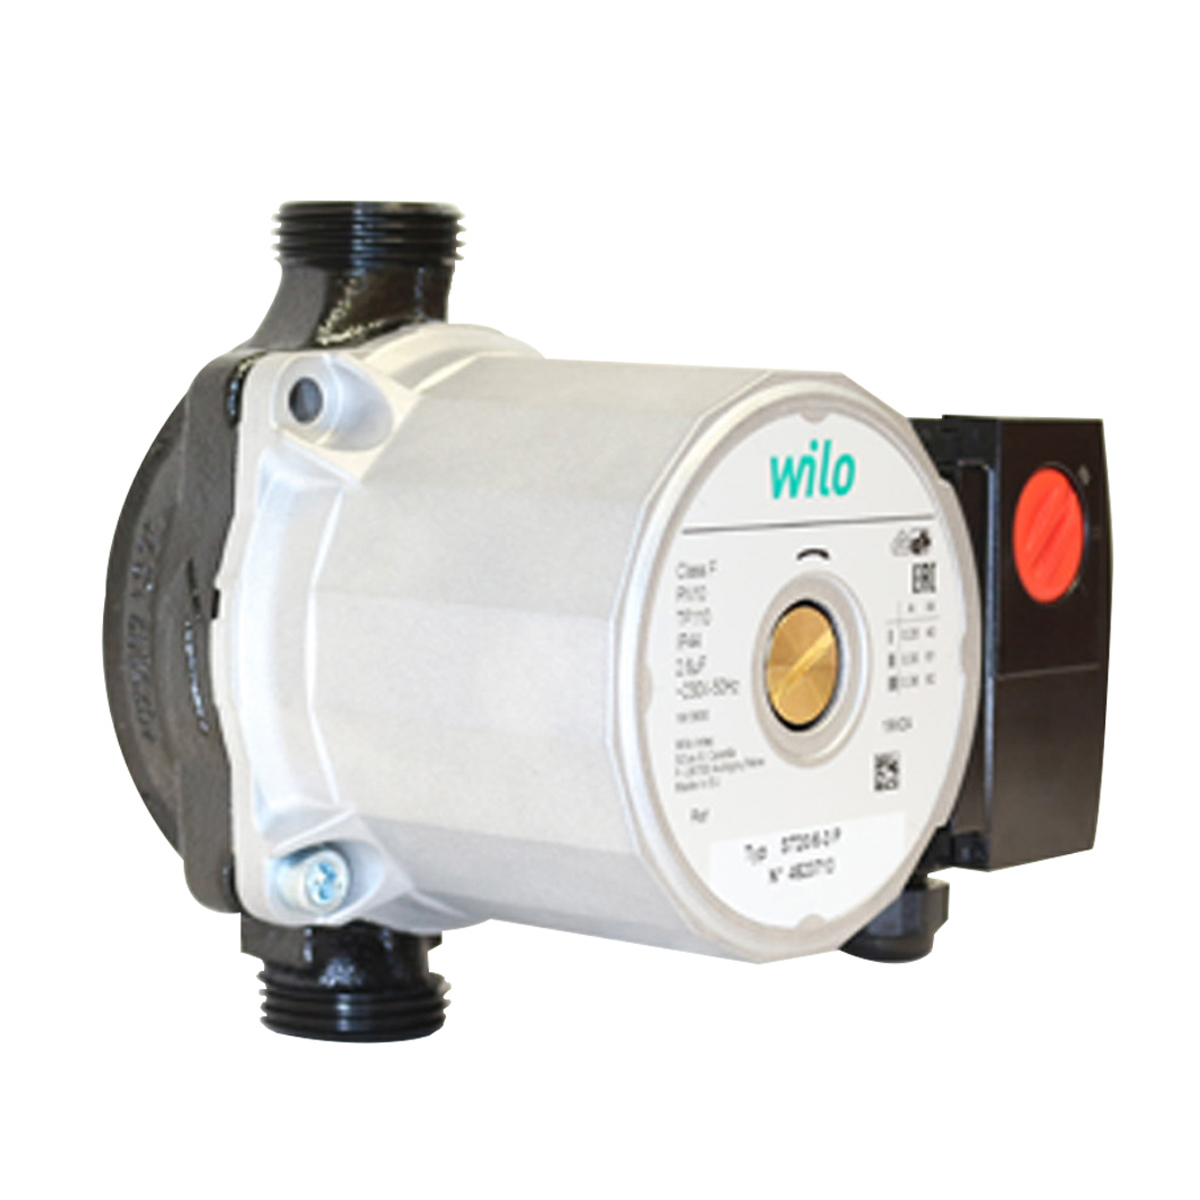 Suntask_Solar_Pumping_Station_Replacement_Pump_Wilo_Pump_side4.jpg